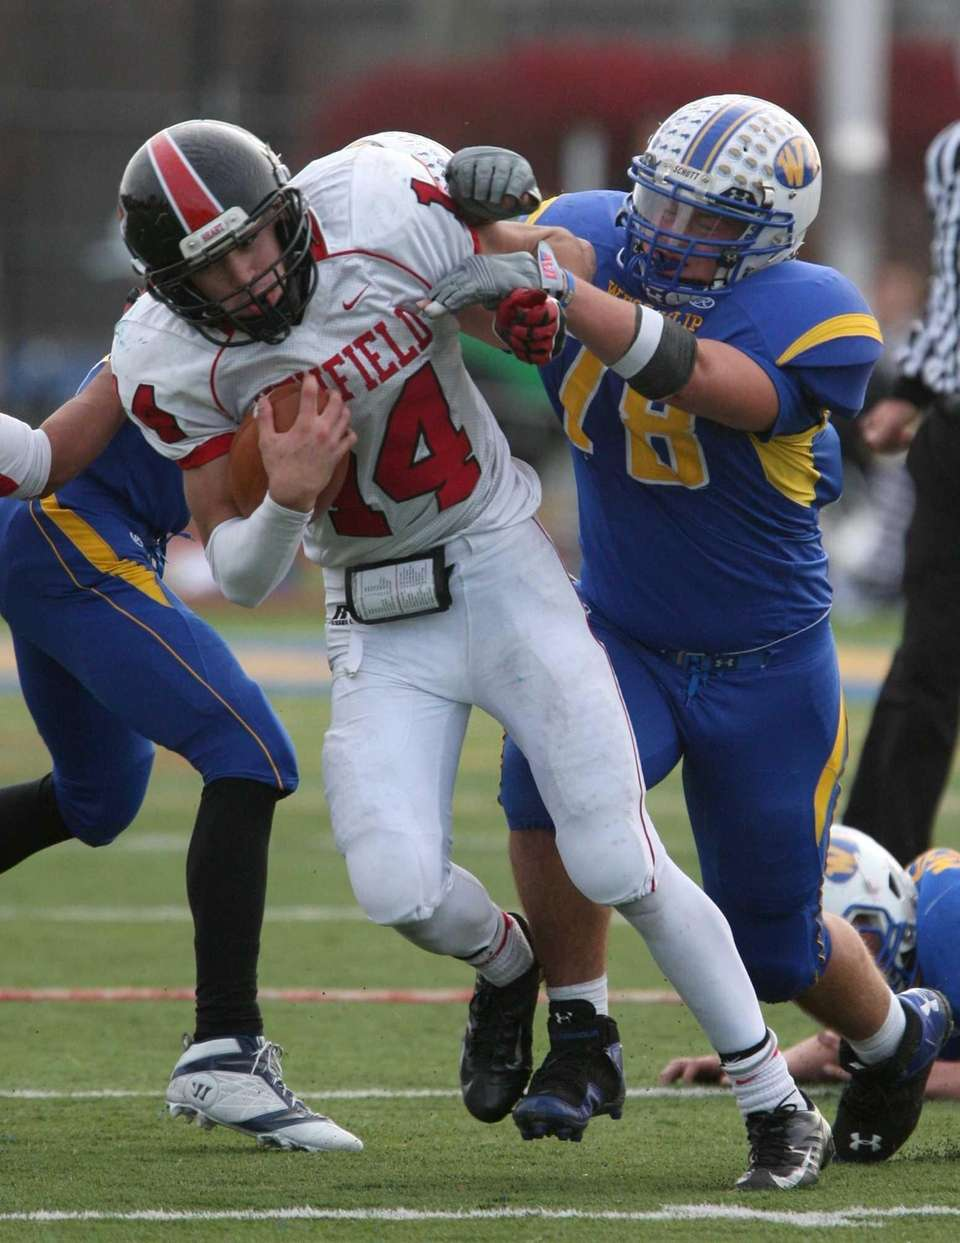 Dylan Harned of Newfield gets wrapped up by